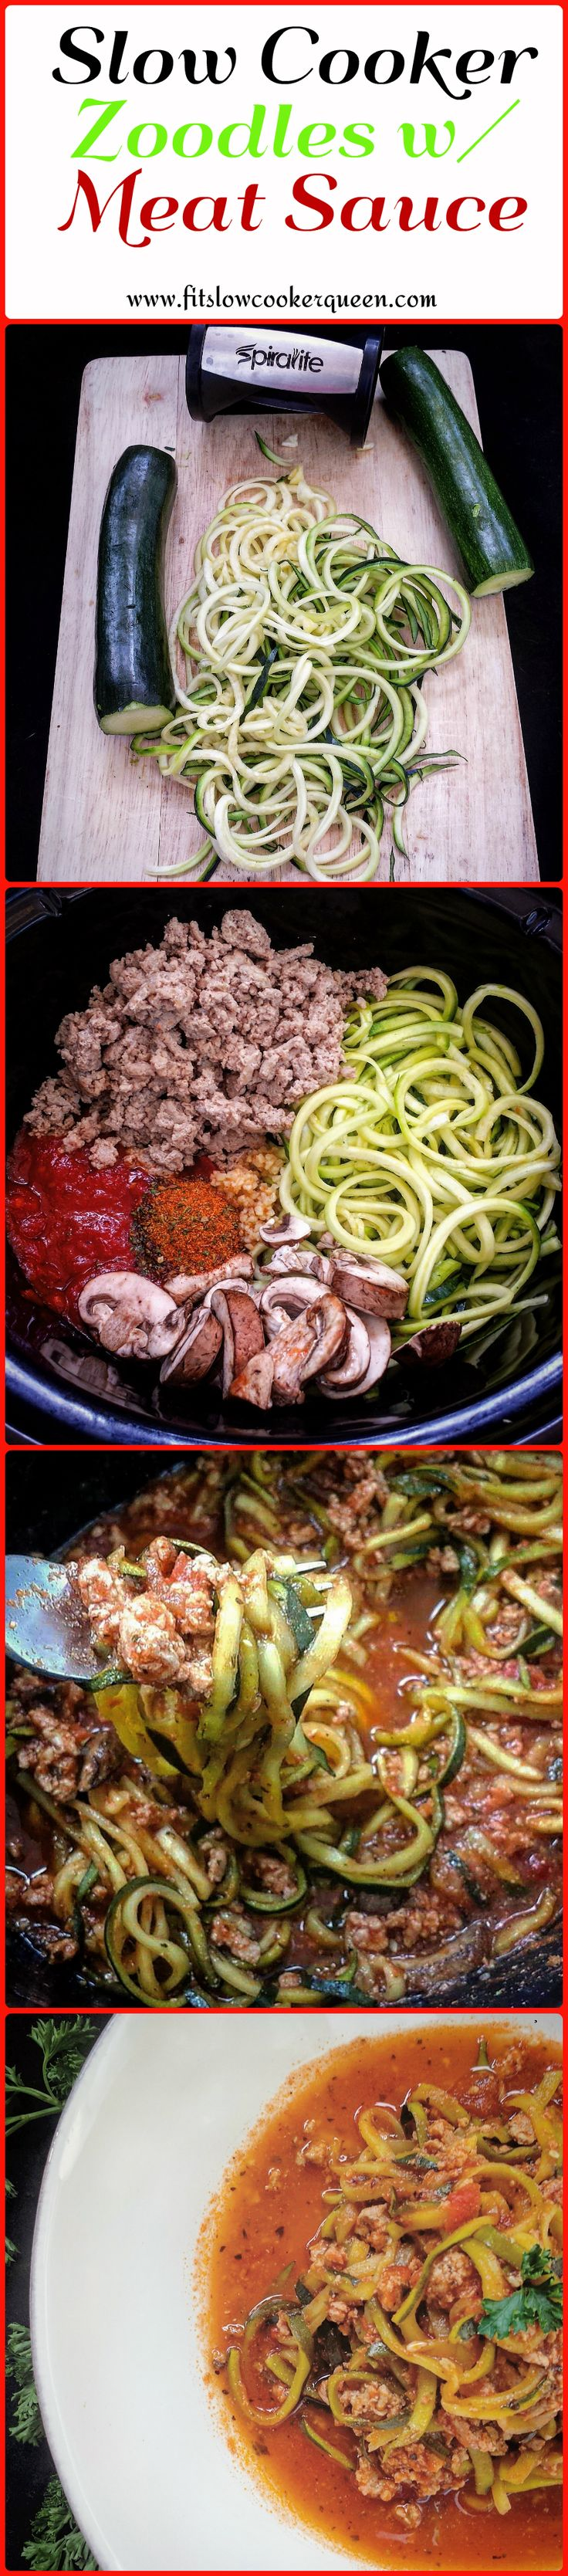 This slow cooker meal combines zoodles with marinara sauce and your choice of meat. There are only 3 main ingredients in this low-carb alternative to spaghetti. #crockpot #slowcooker